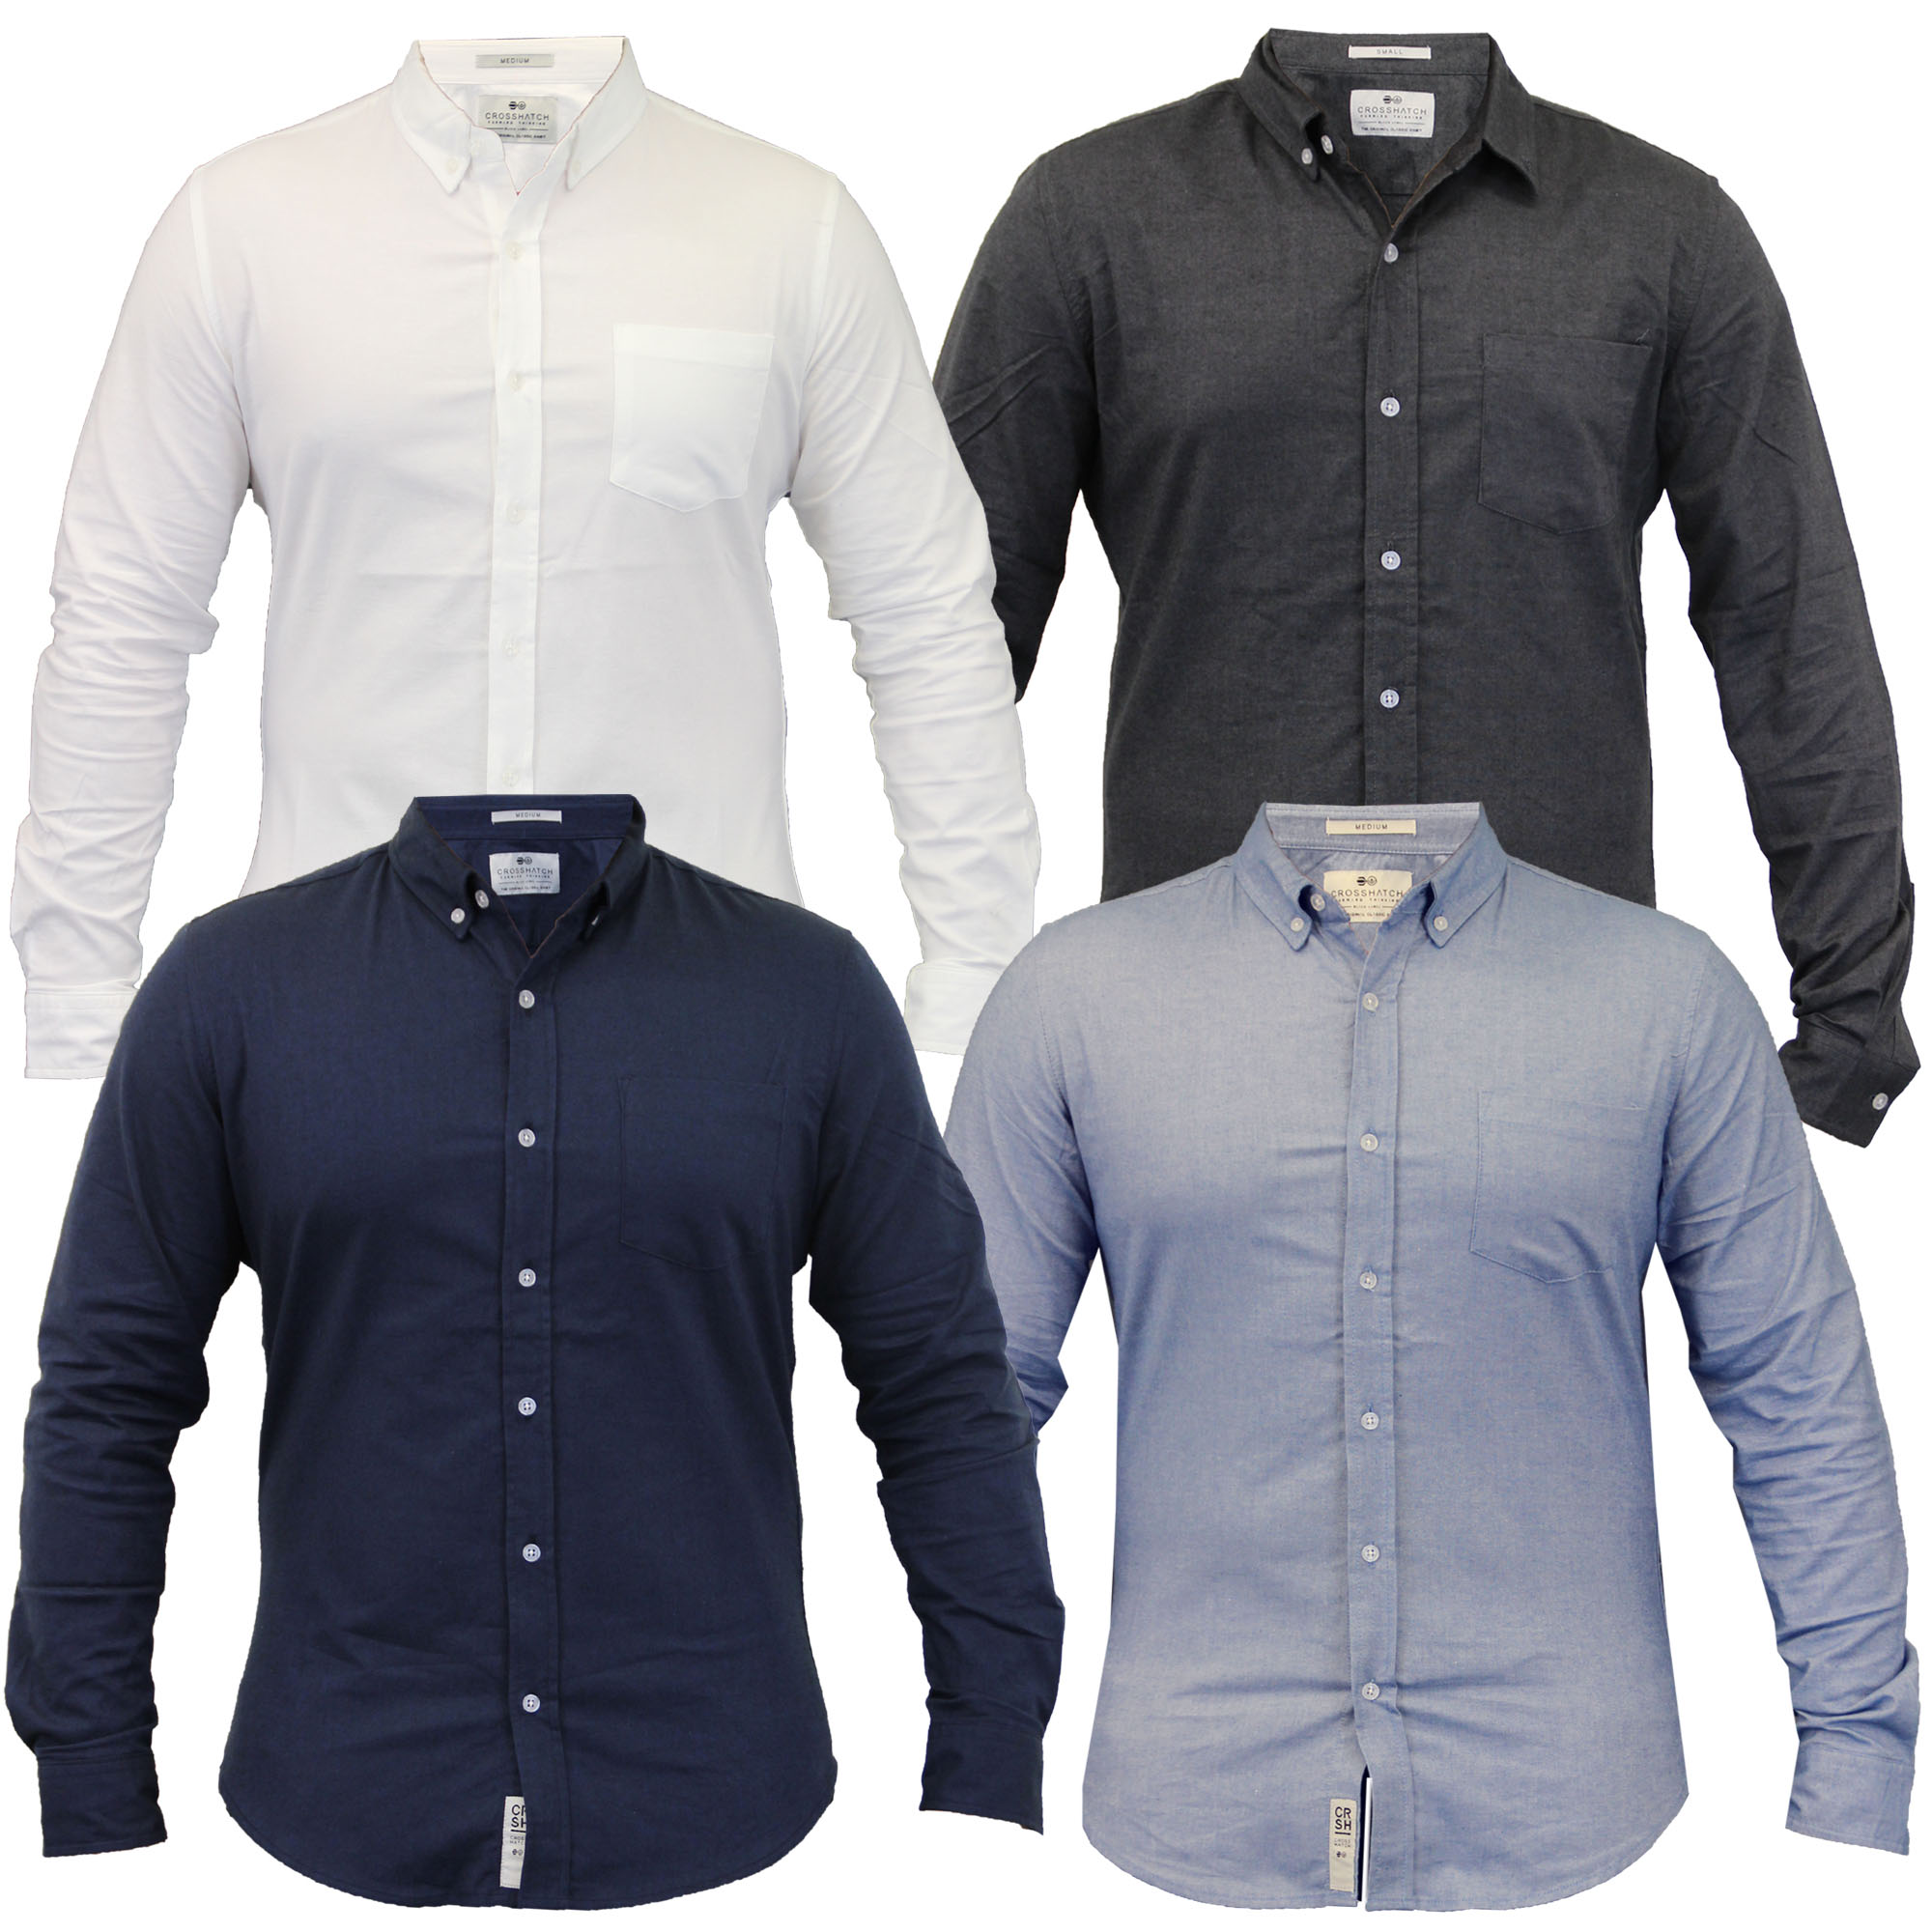 Find great deals on eBay for work collared shirts womens. Shop with confidence.